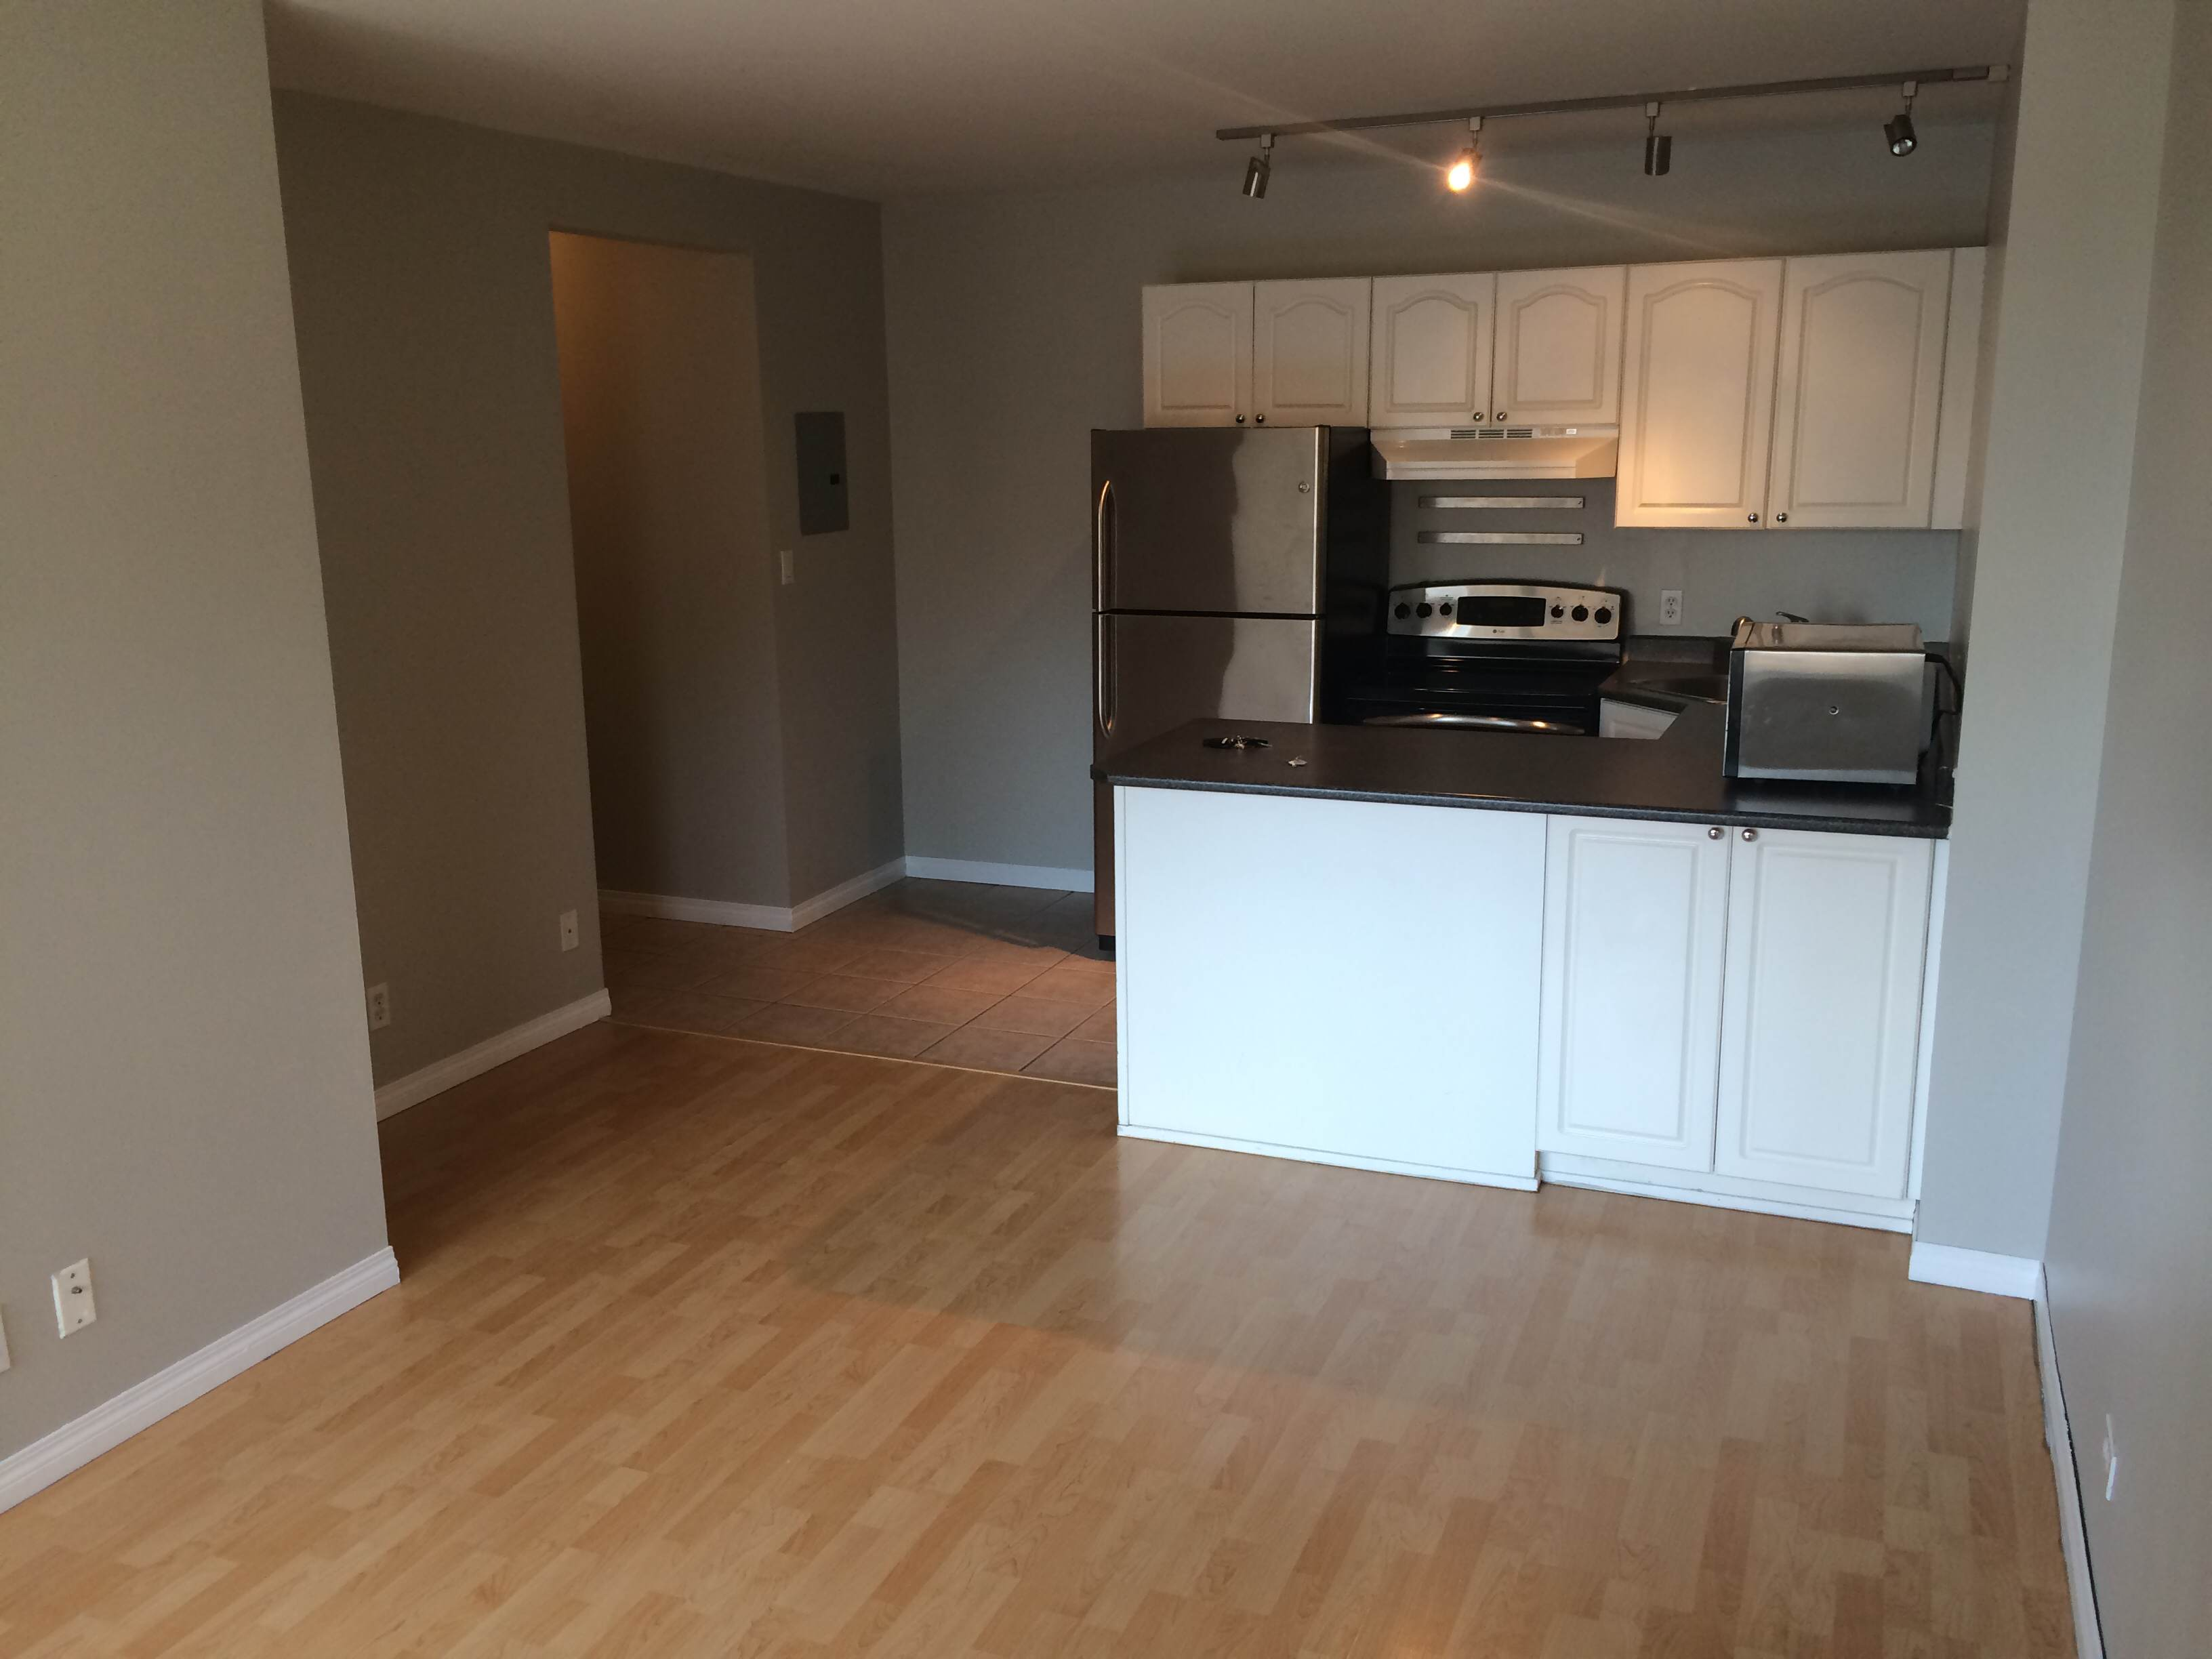 Downtown 1 bed 1 bath condo $1050/month